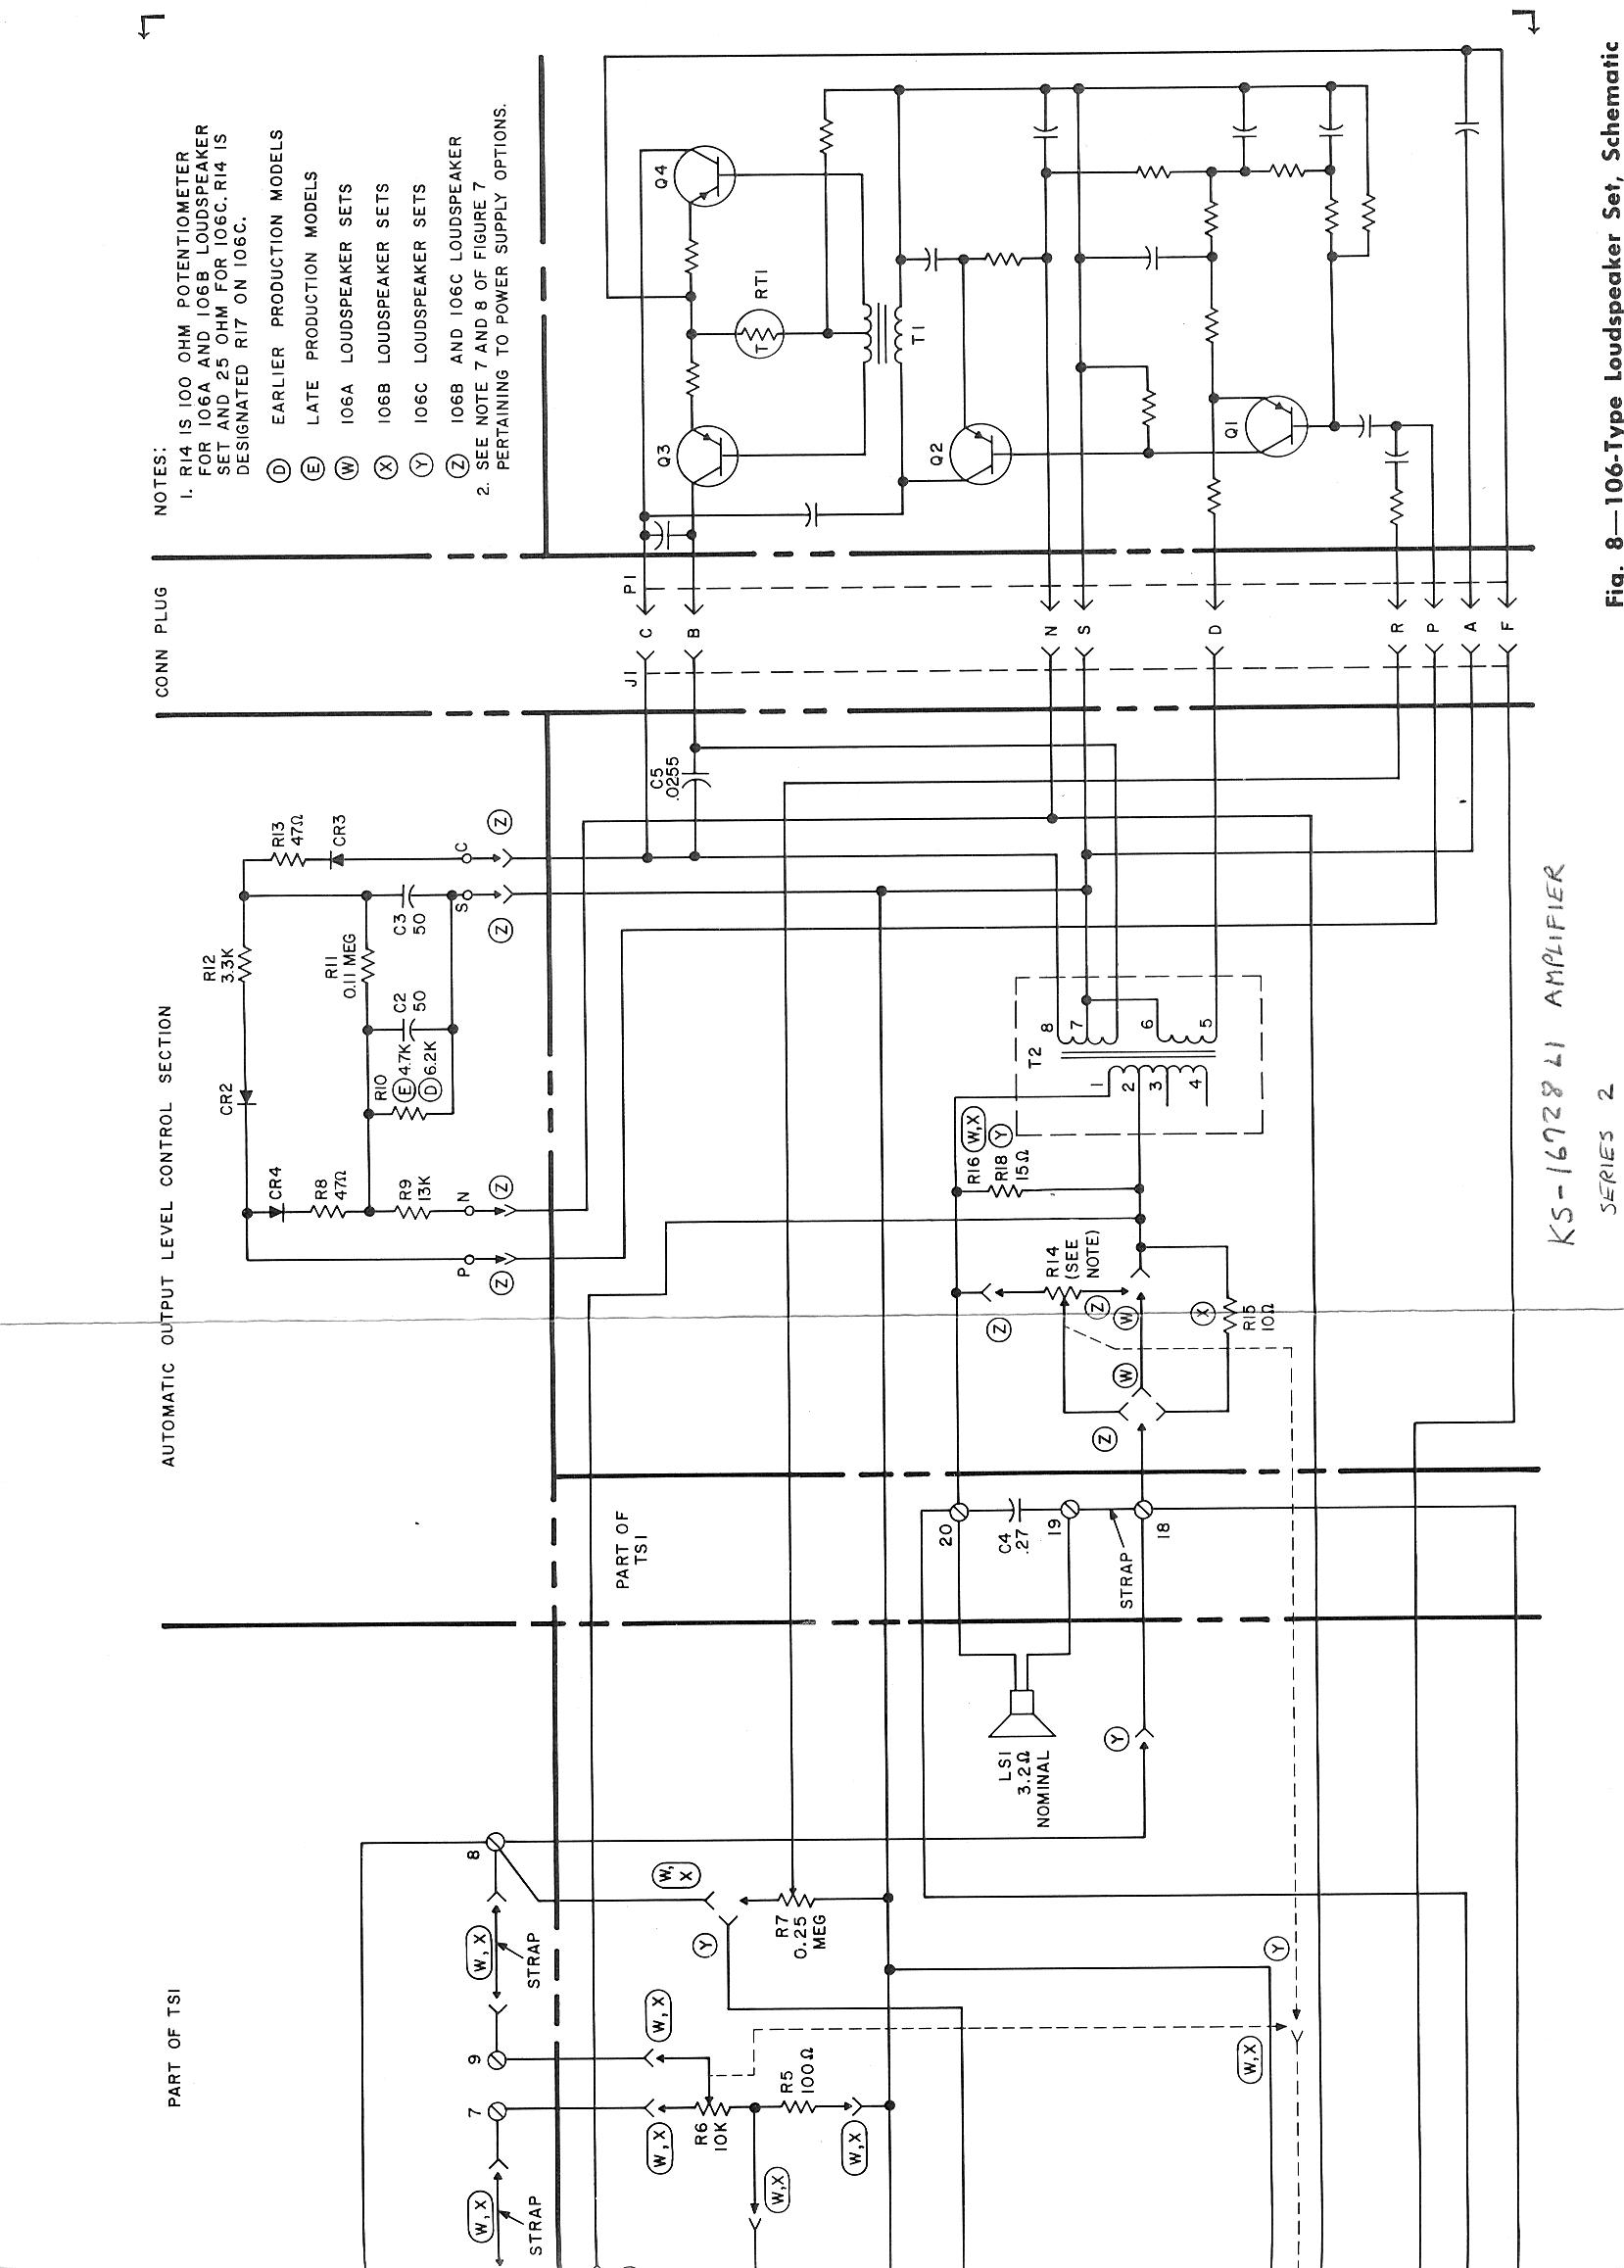 telephone technical references left half of schematic · right half of schematic